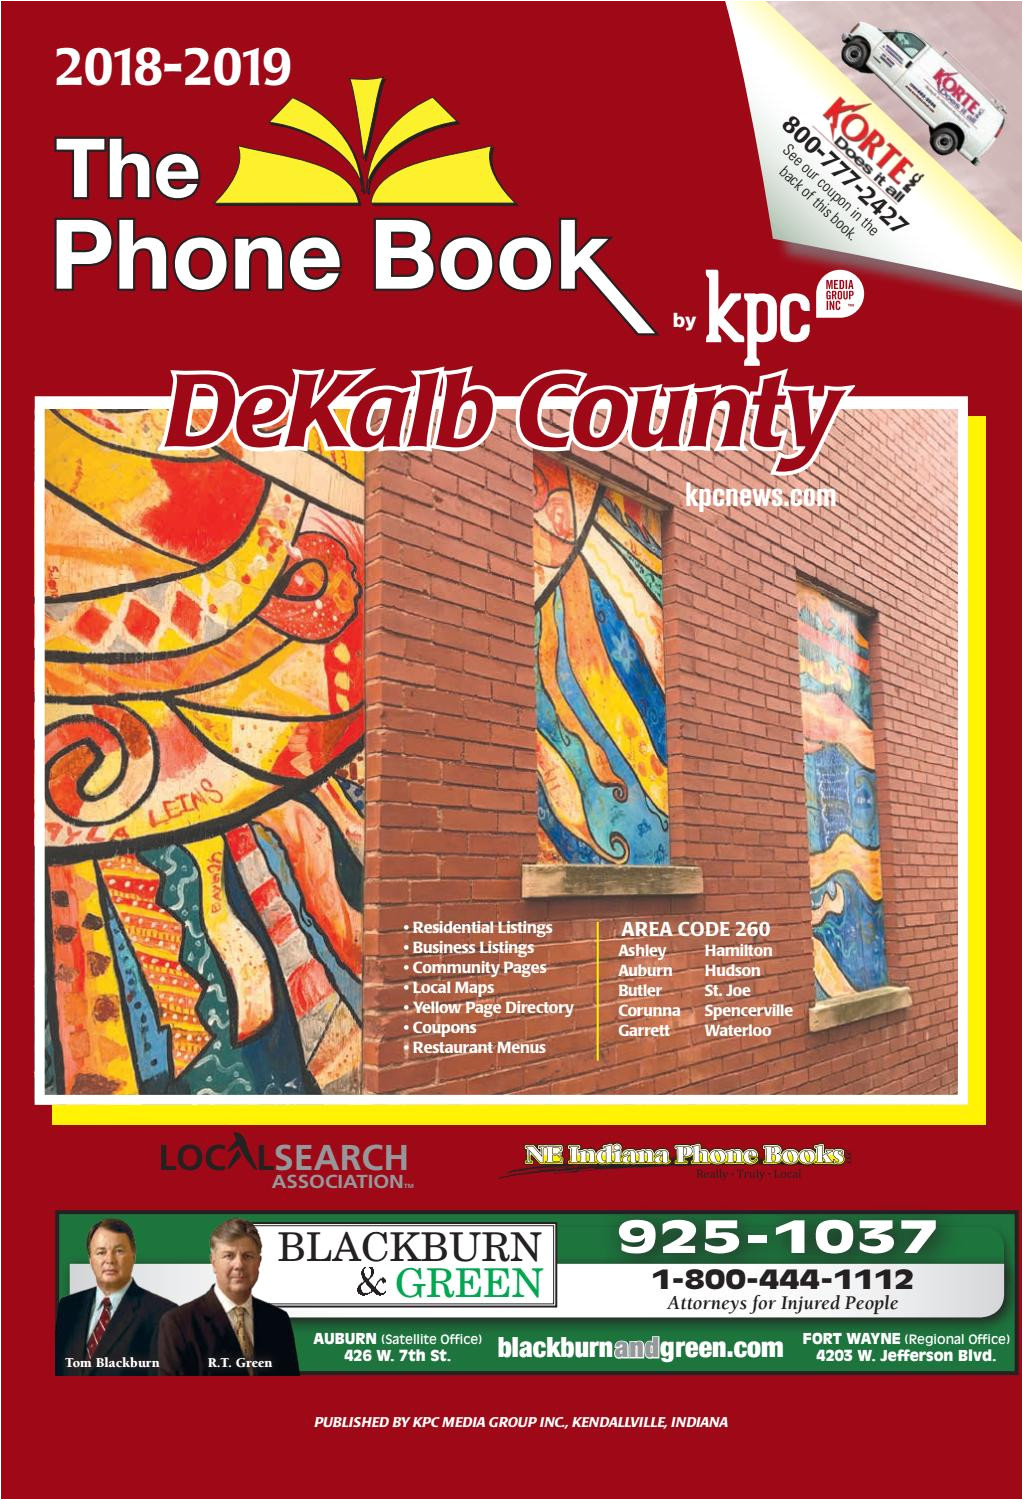 Recycling Coupons orange County 2018 2019 Dekalb County Phone Book by Kpc Media Group issuu